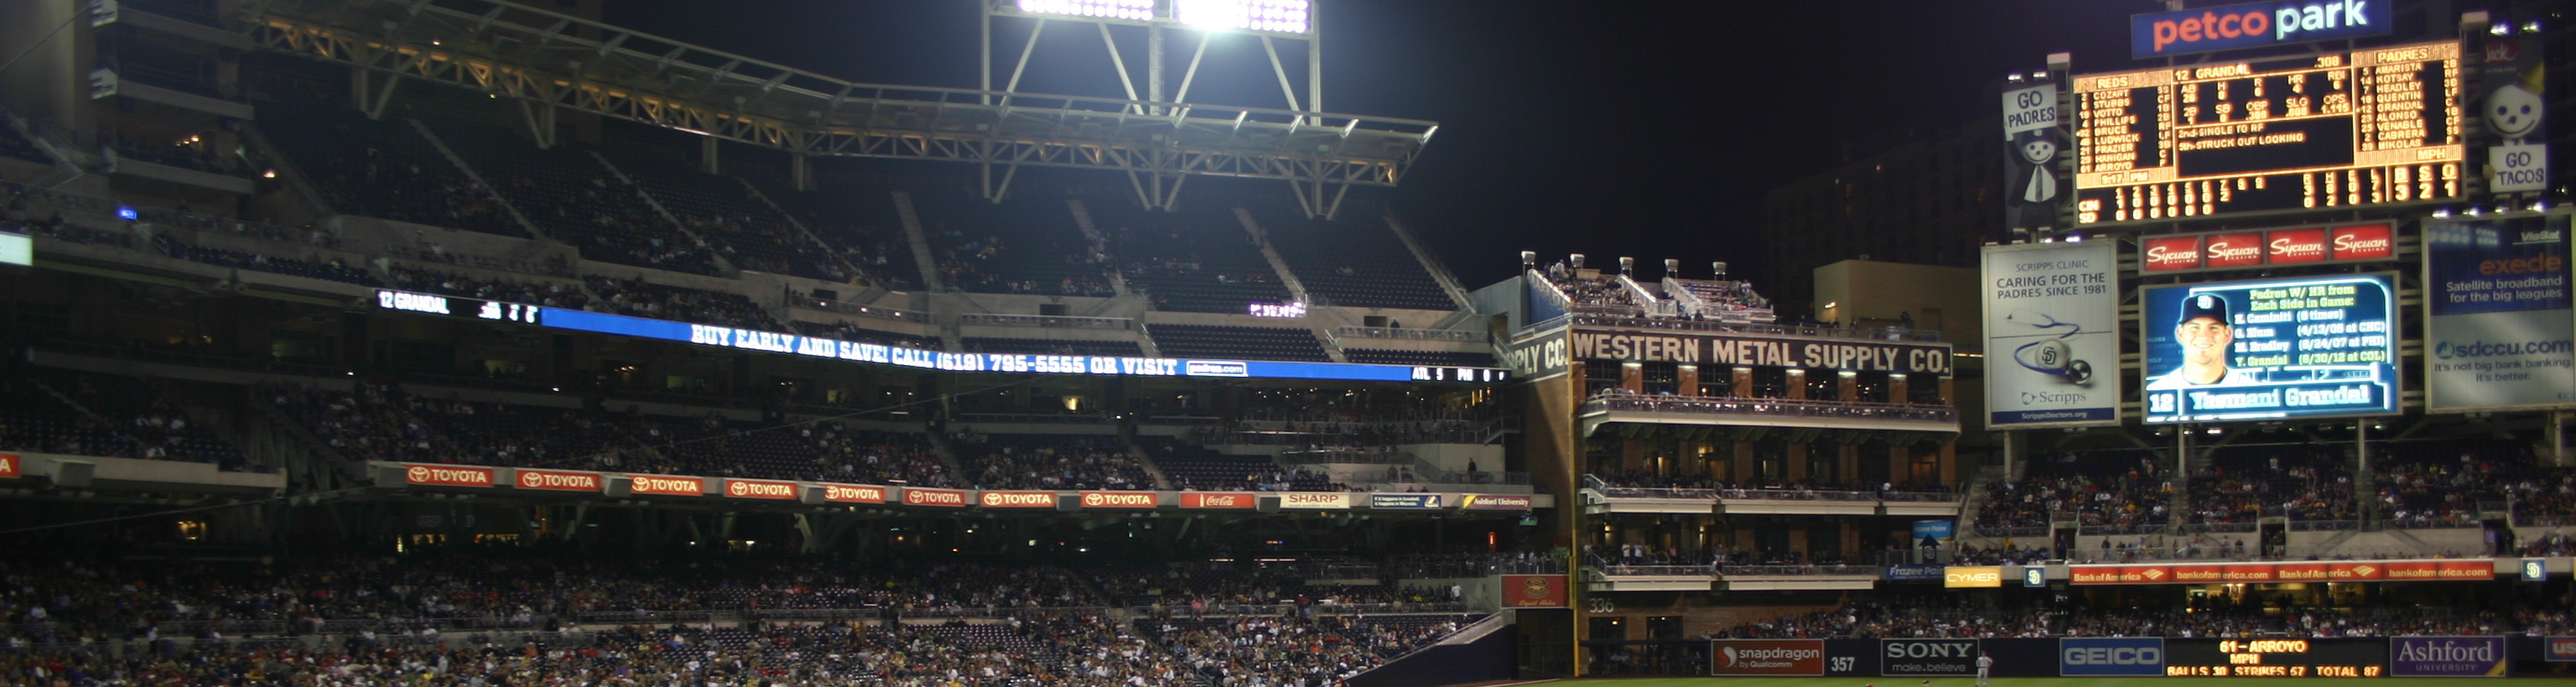 PETCO_Field_Scoreboard_Night.jpg